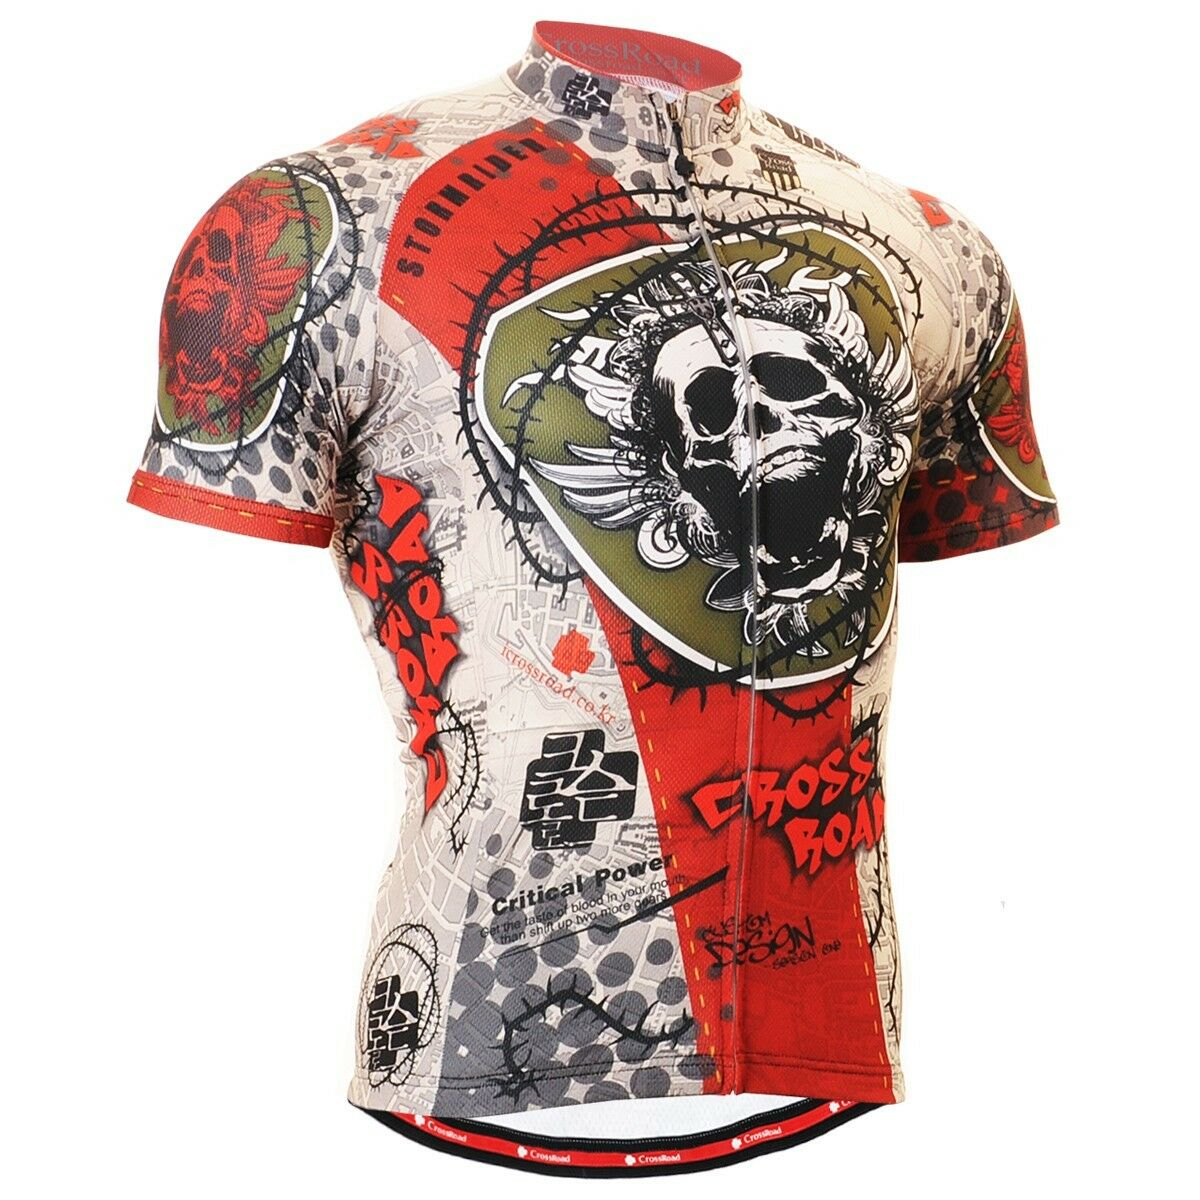 FIXGEAR CS-502 Men's Short Sleeve Cycling Jersey Bicycle  Apparel Roadbike MTB  hot limited edition